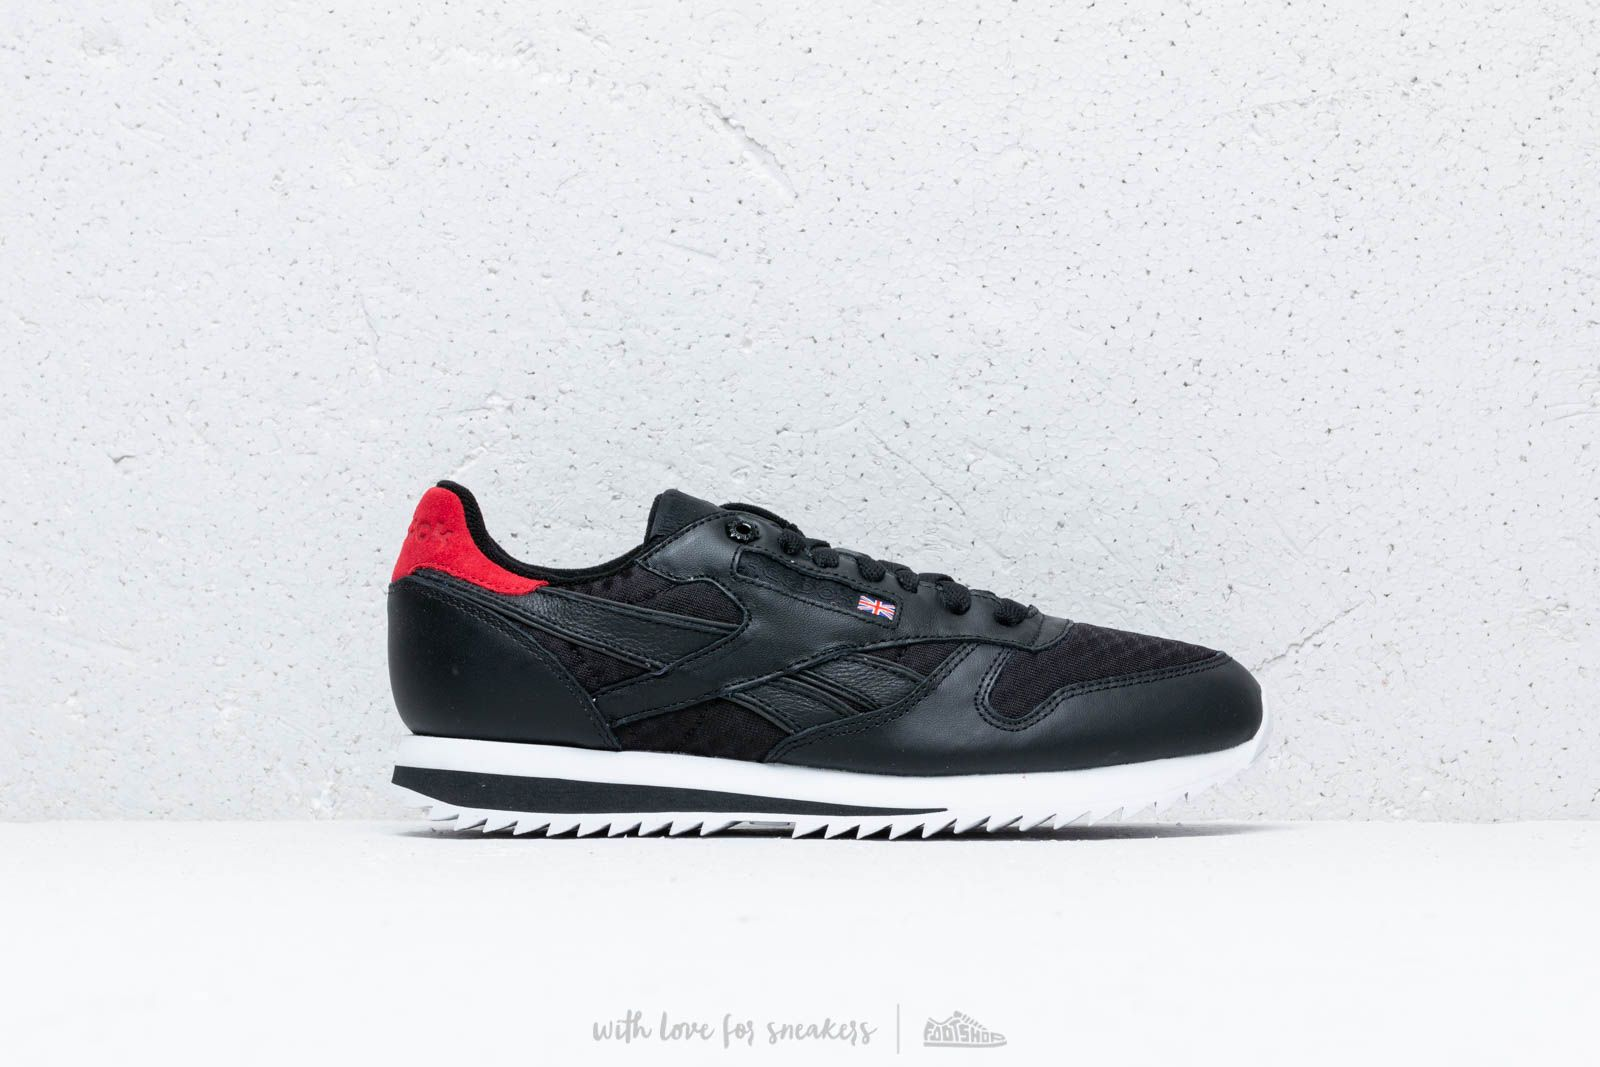 Reebok Classic Leather HC Black  Excellent Red  Team Dark Royal  White at a ac0aee8f3